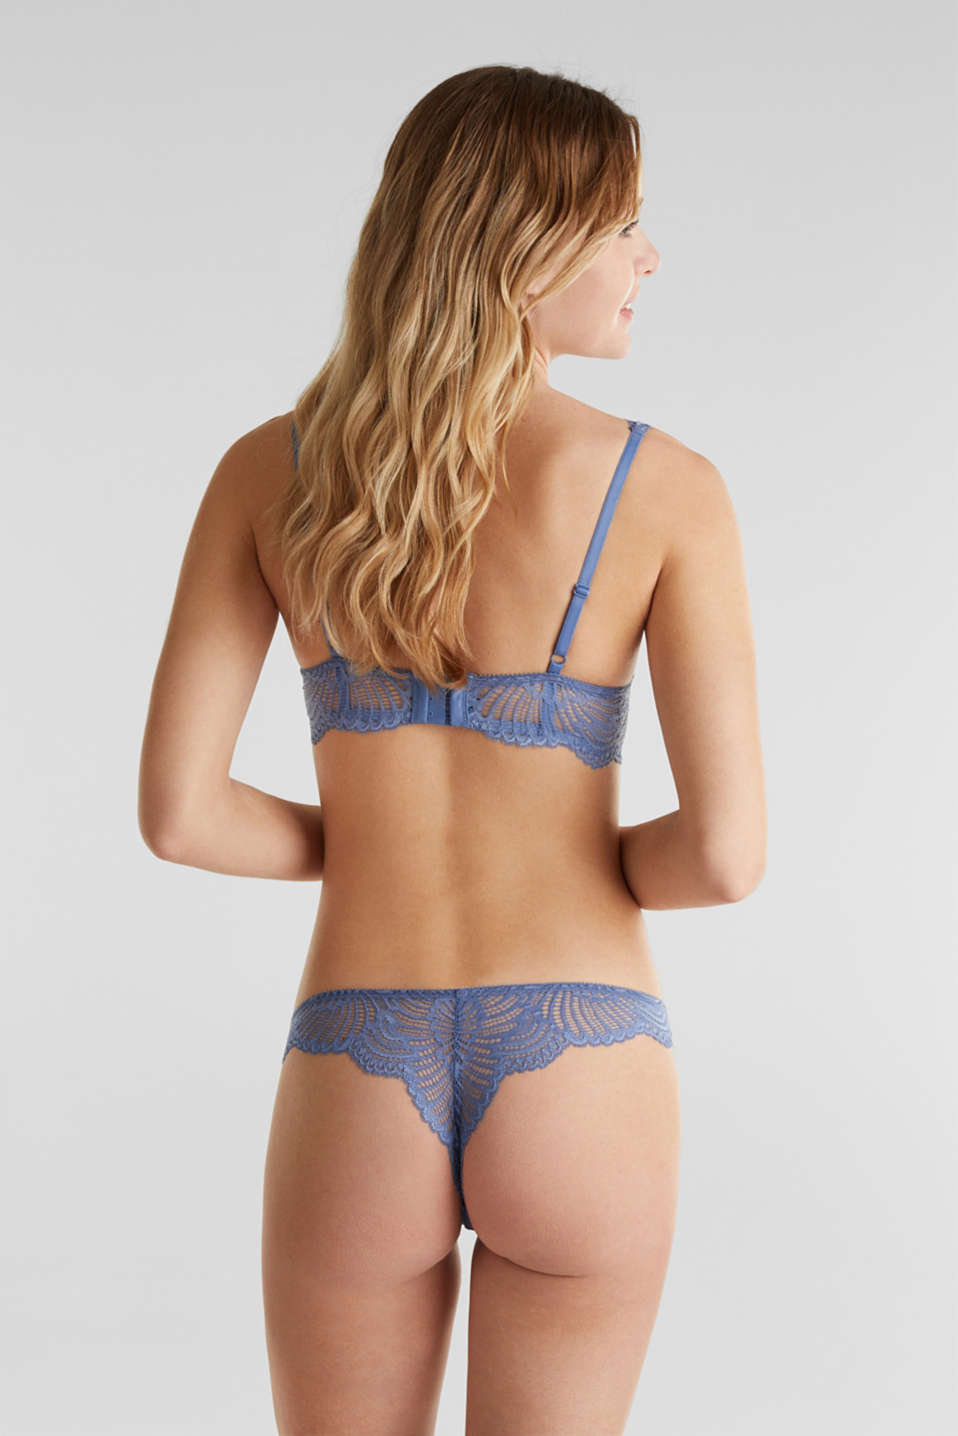 Padded underwire bra made of mesh/lace, BLUE LAVENDER, detail image number 1